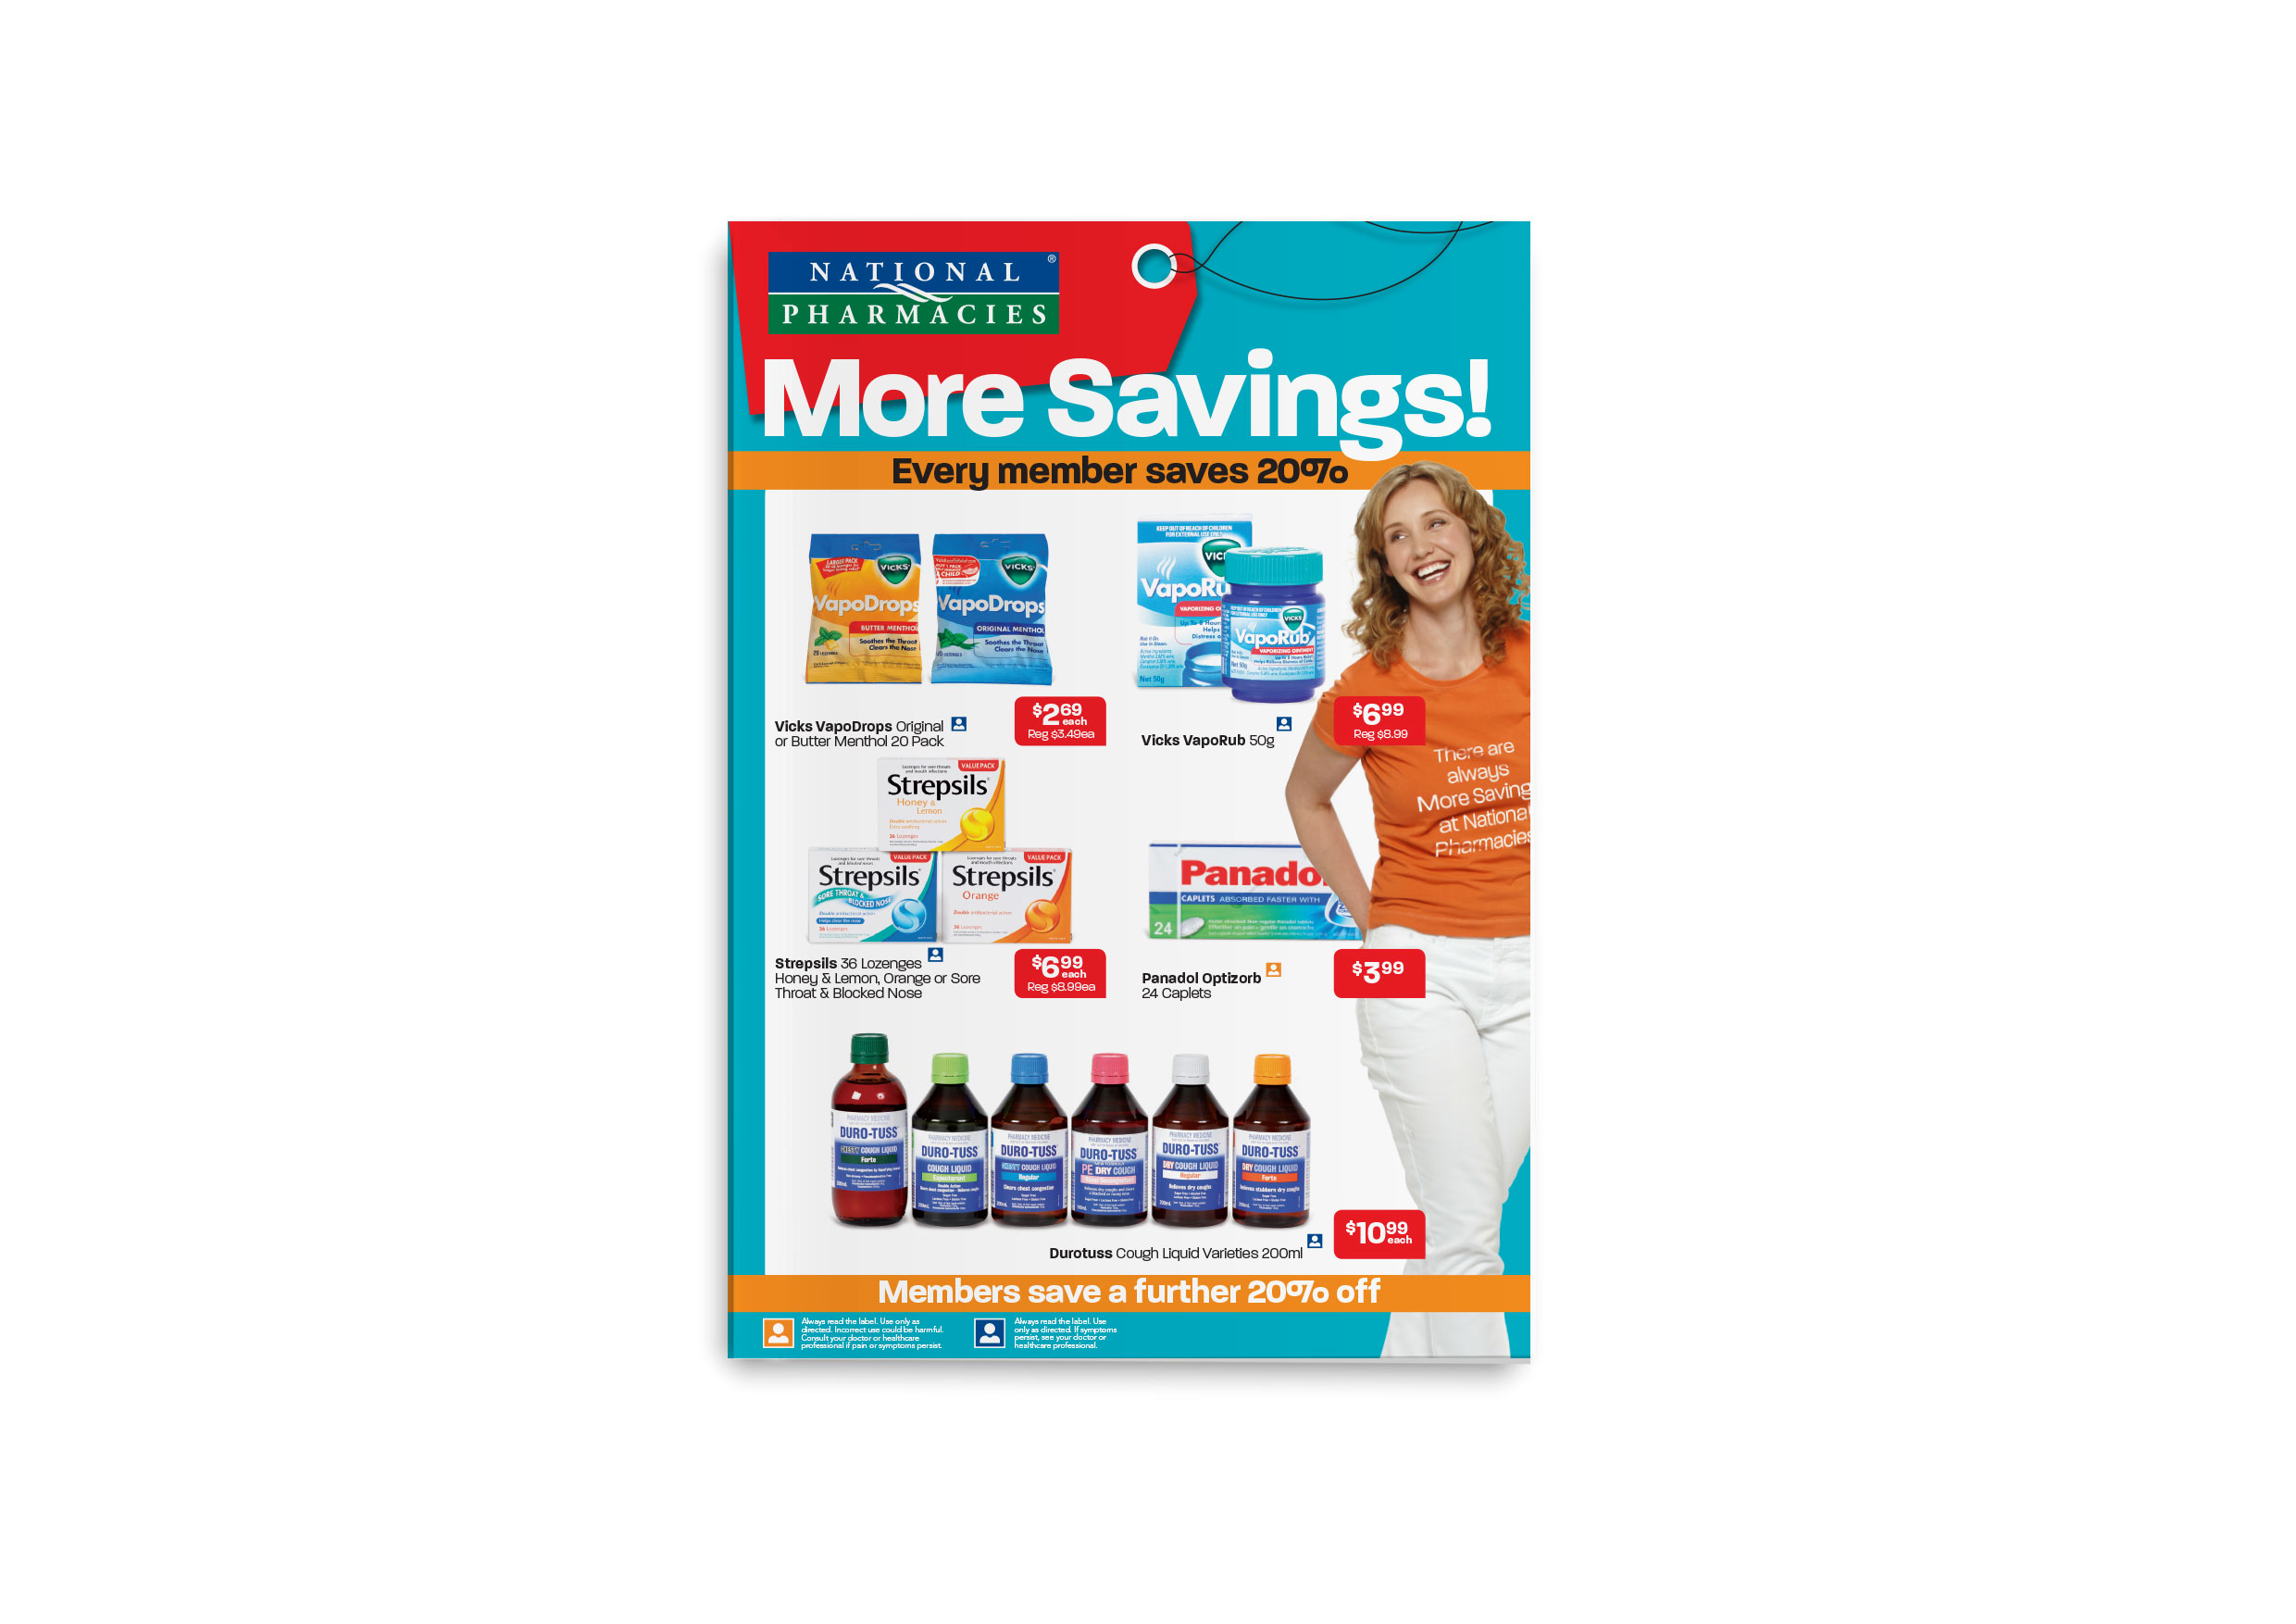 MORE-SAVINGS_1